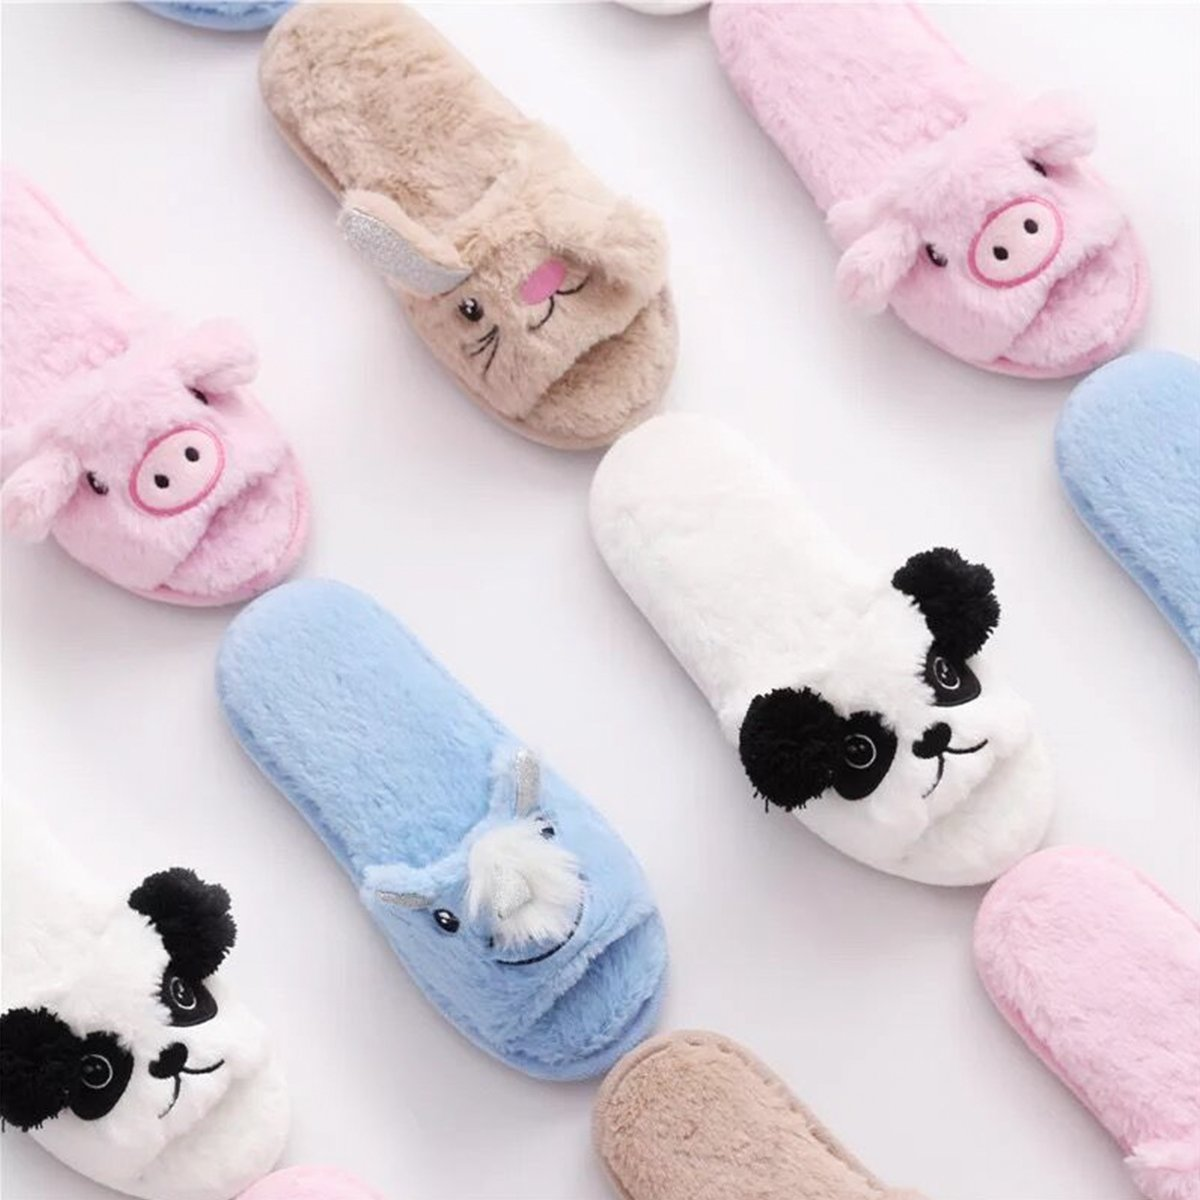 Womens Open Toe Slippers | Cute Bunny Unicorn Animal Slipper | Soft Fleece Memory Foam Clog | Anti-Slip Sole Indoor Outdoor Shoes | Flip Flop Spa Slippers (9-10, BrownBunny) by Caramella Bubble (Image #8)